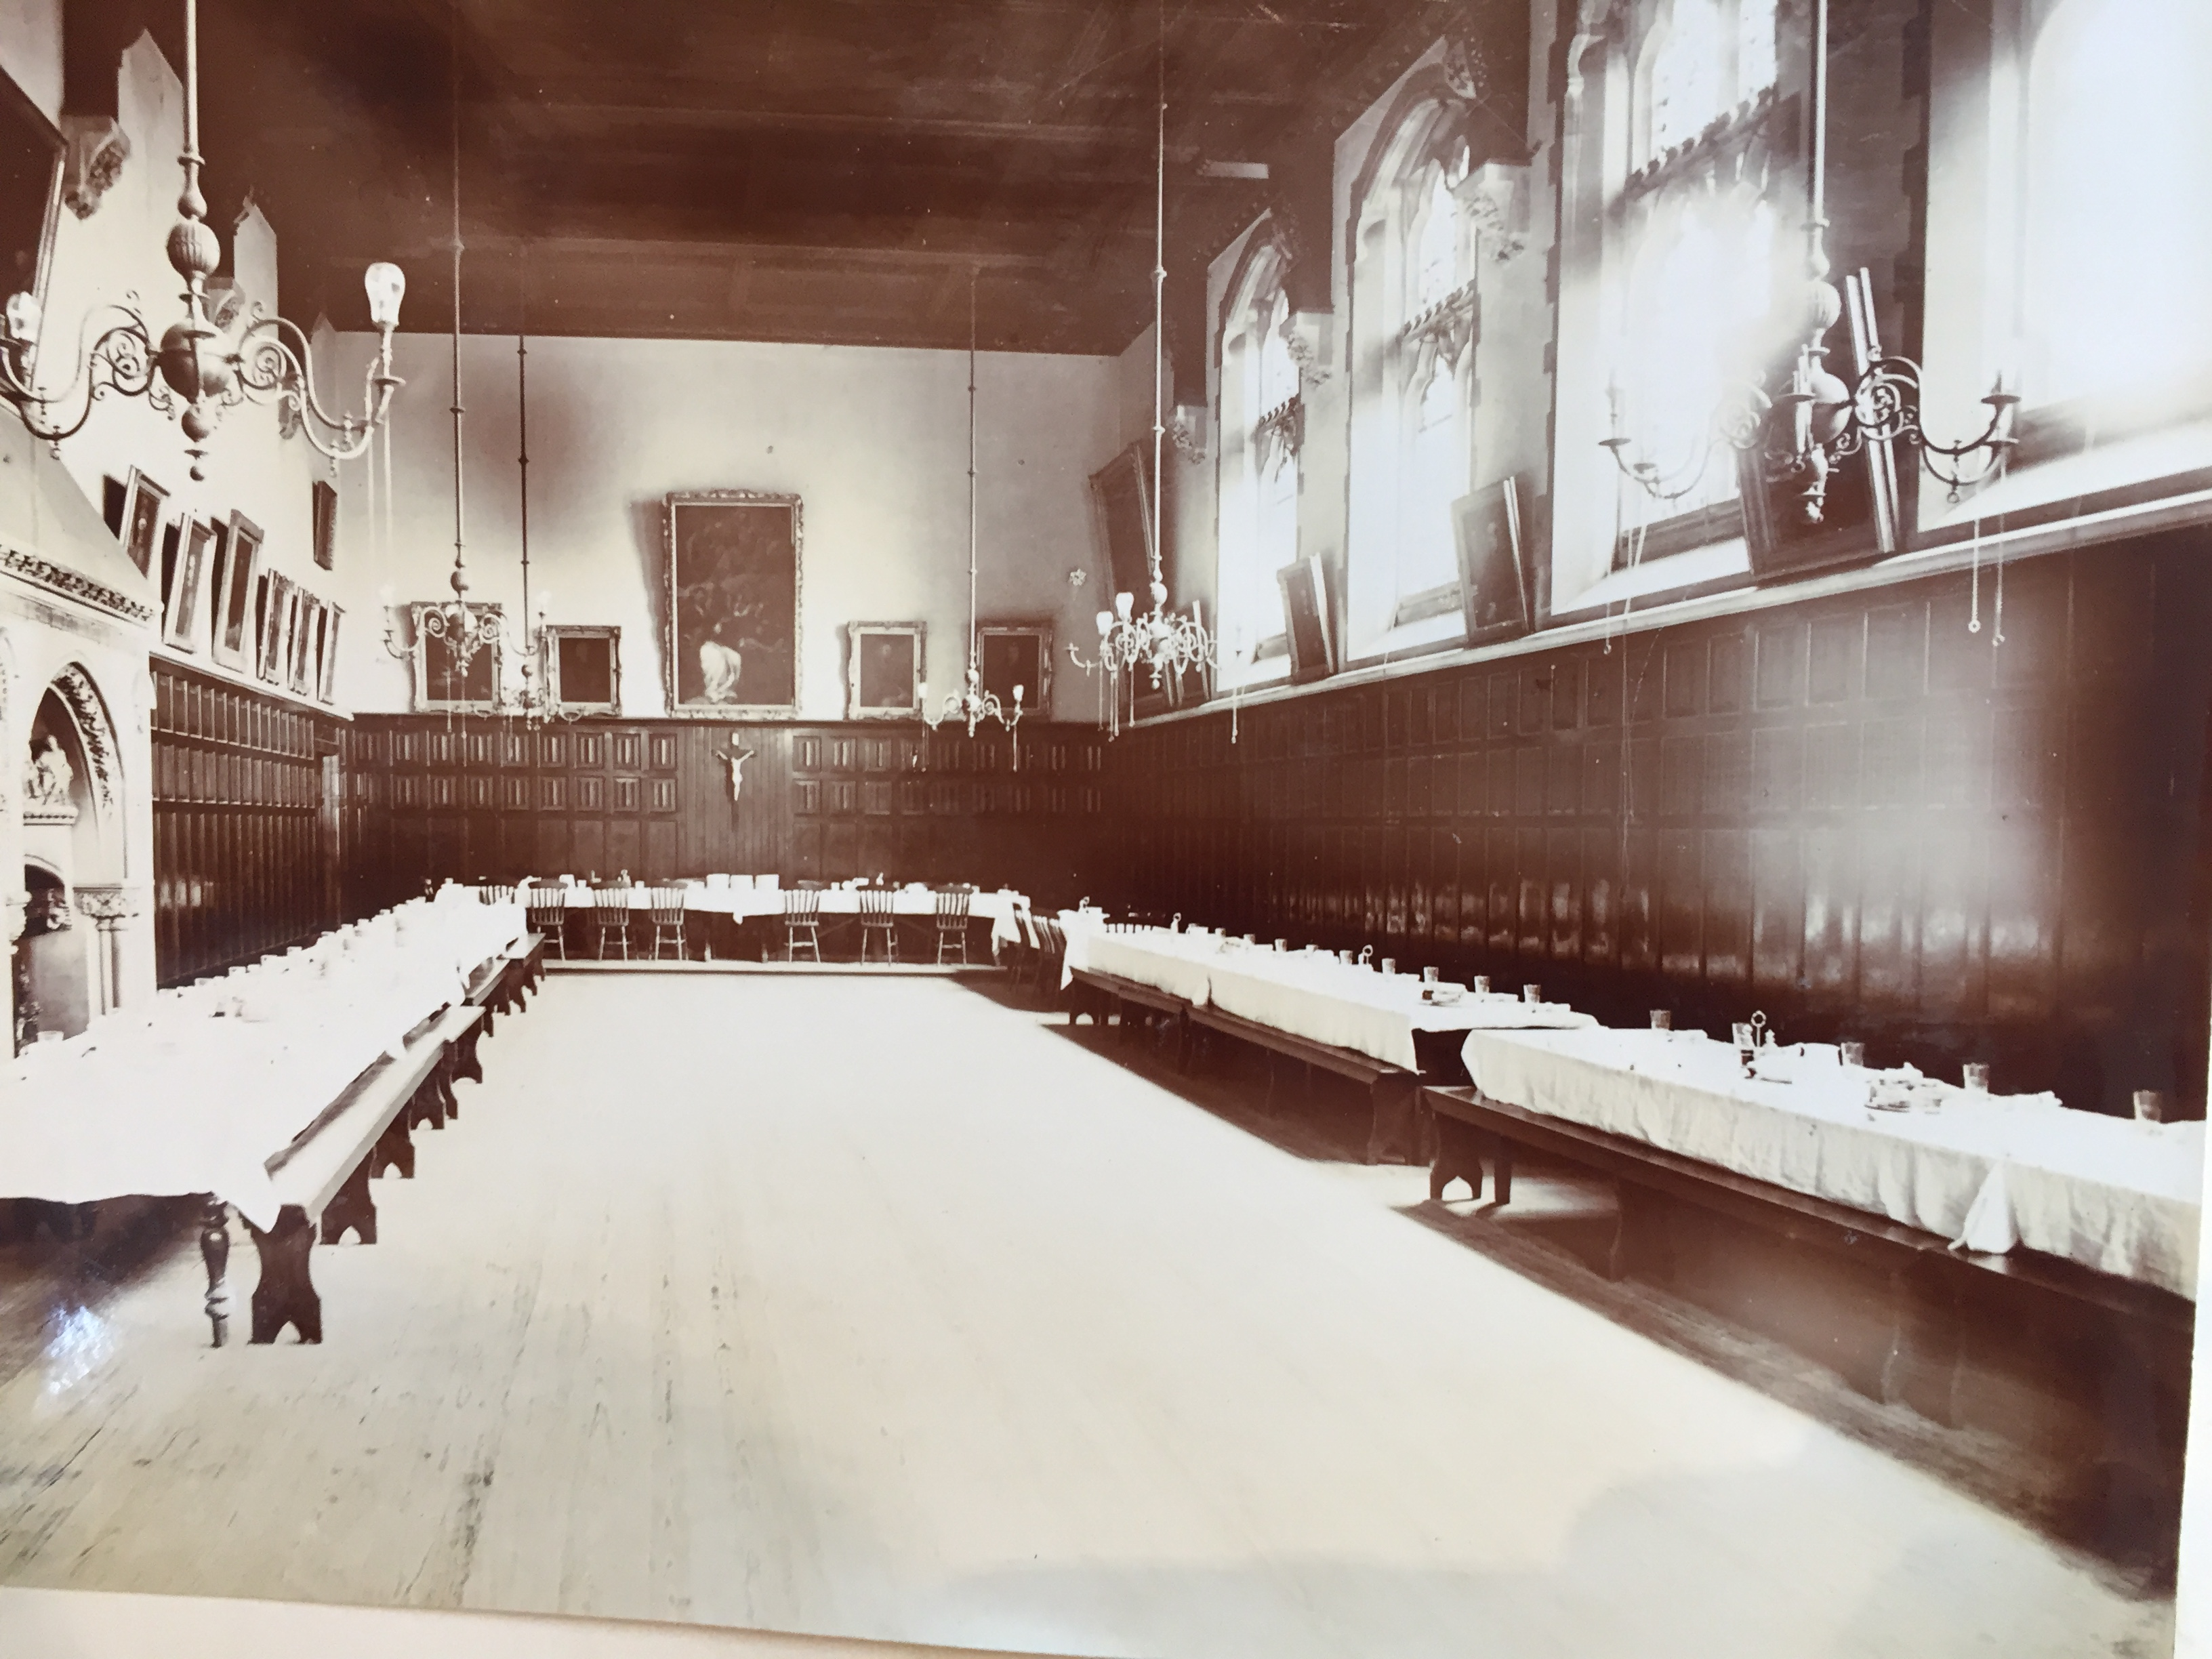 Old black and white image of hall in monastery